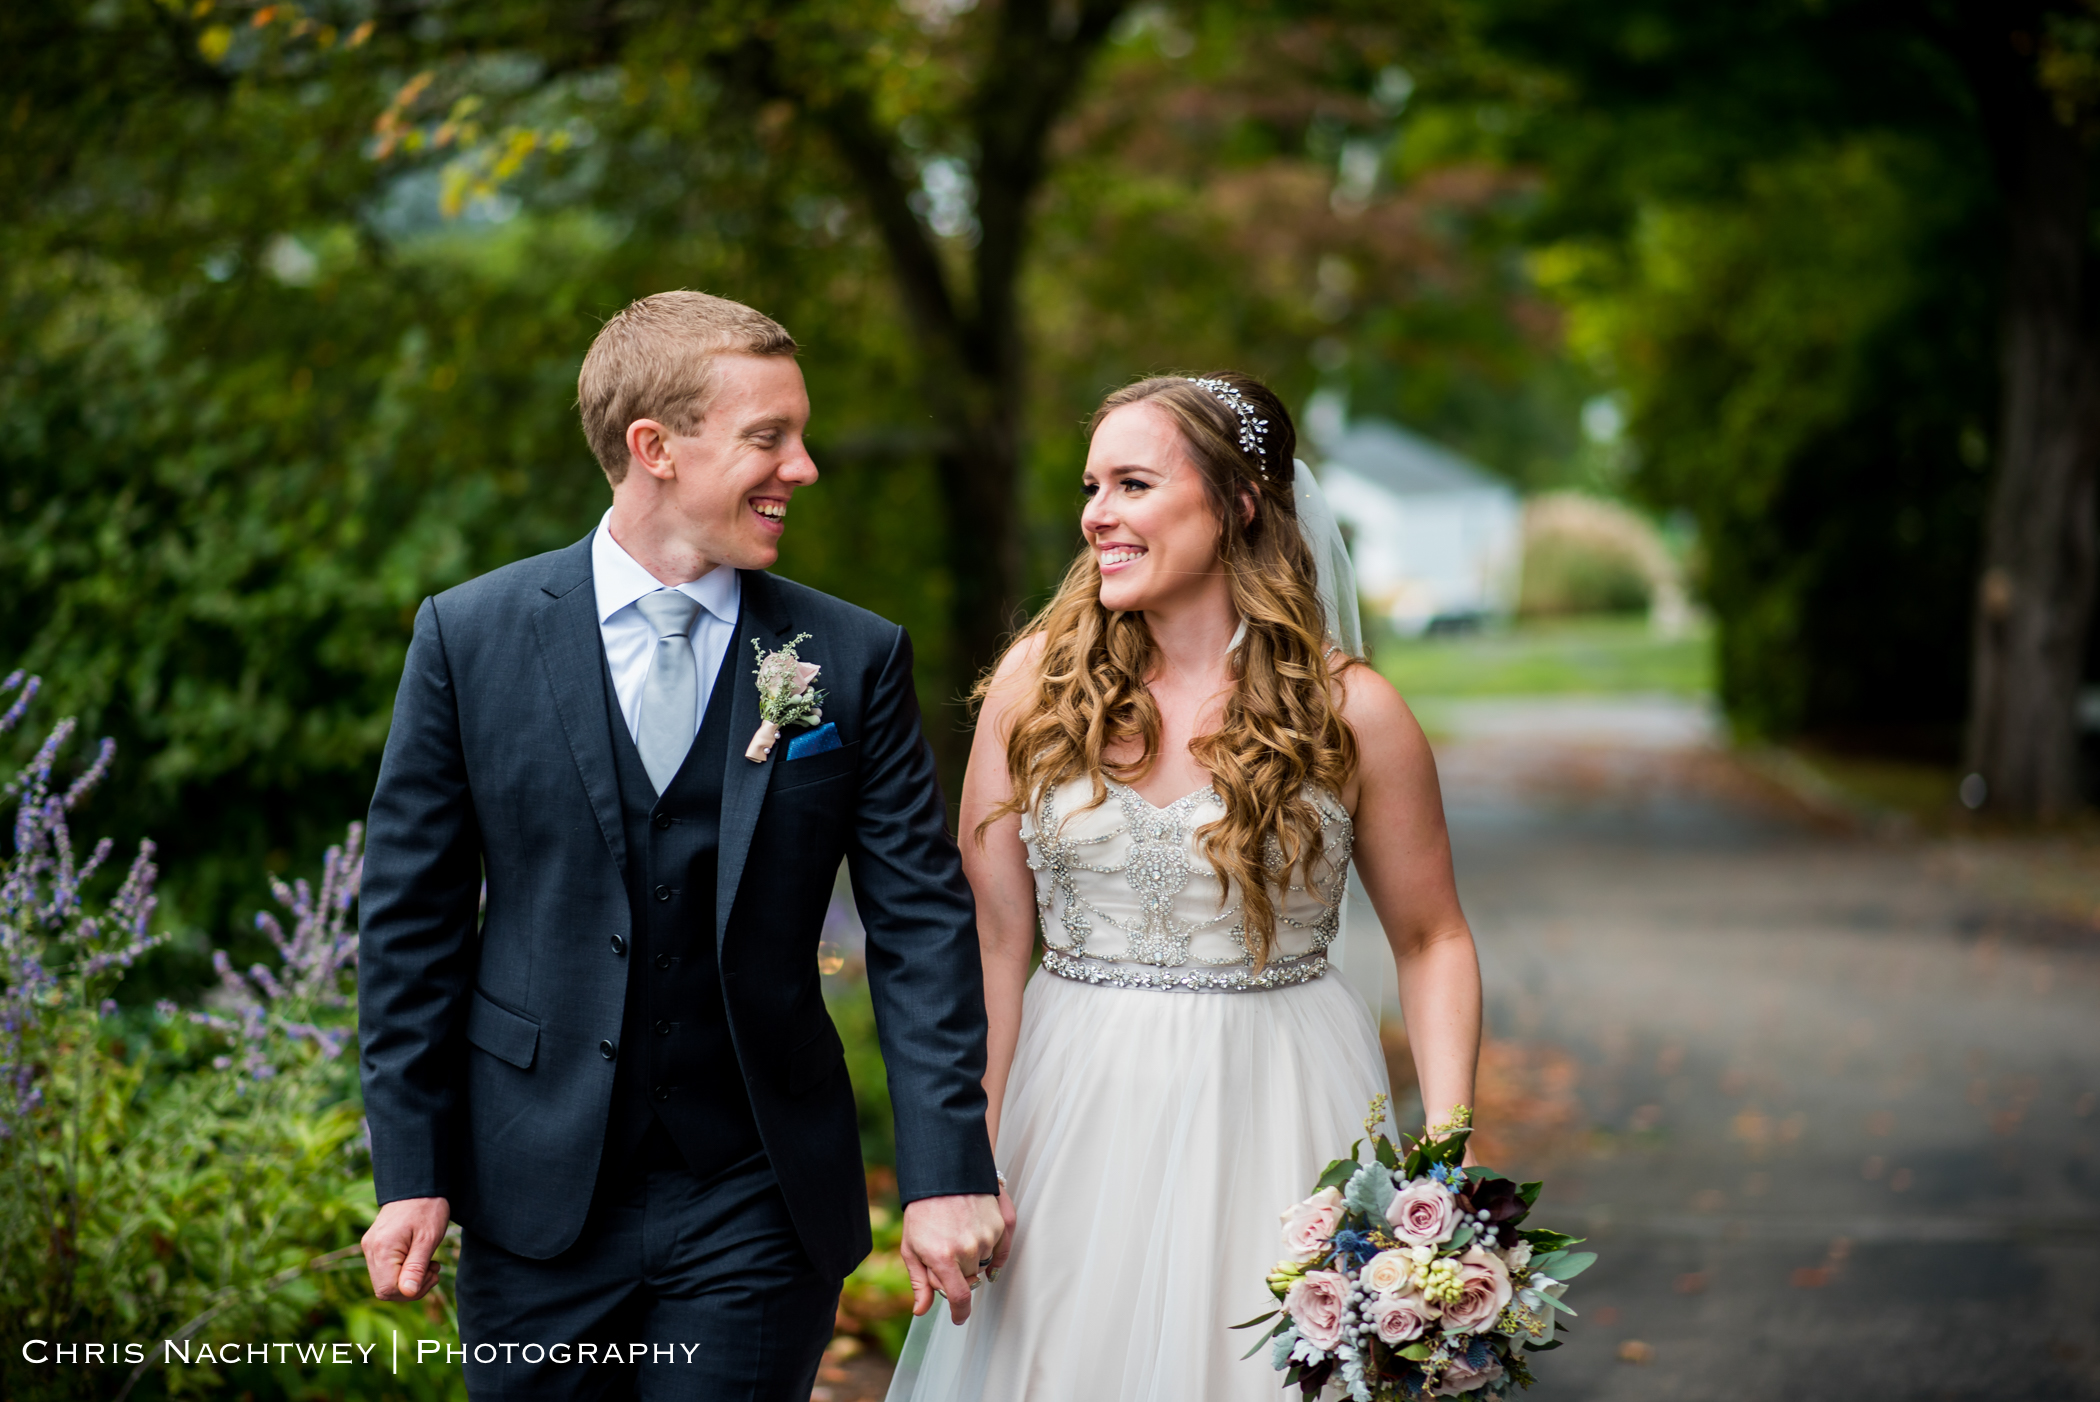 inn-at-mystic-wedding-photos-chris-nachtwey-photography-2018-17.jpg